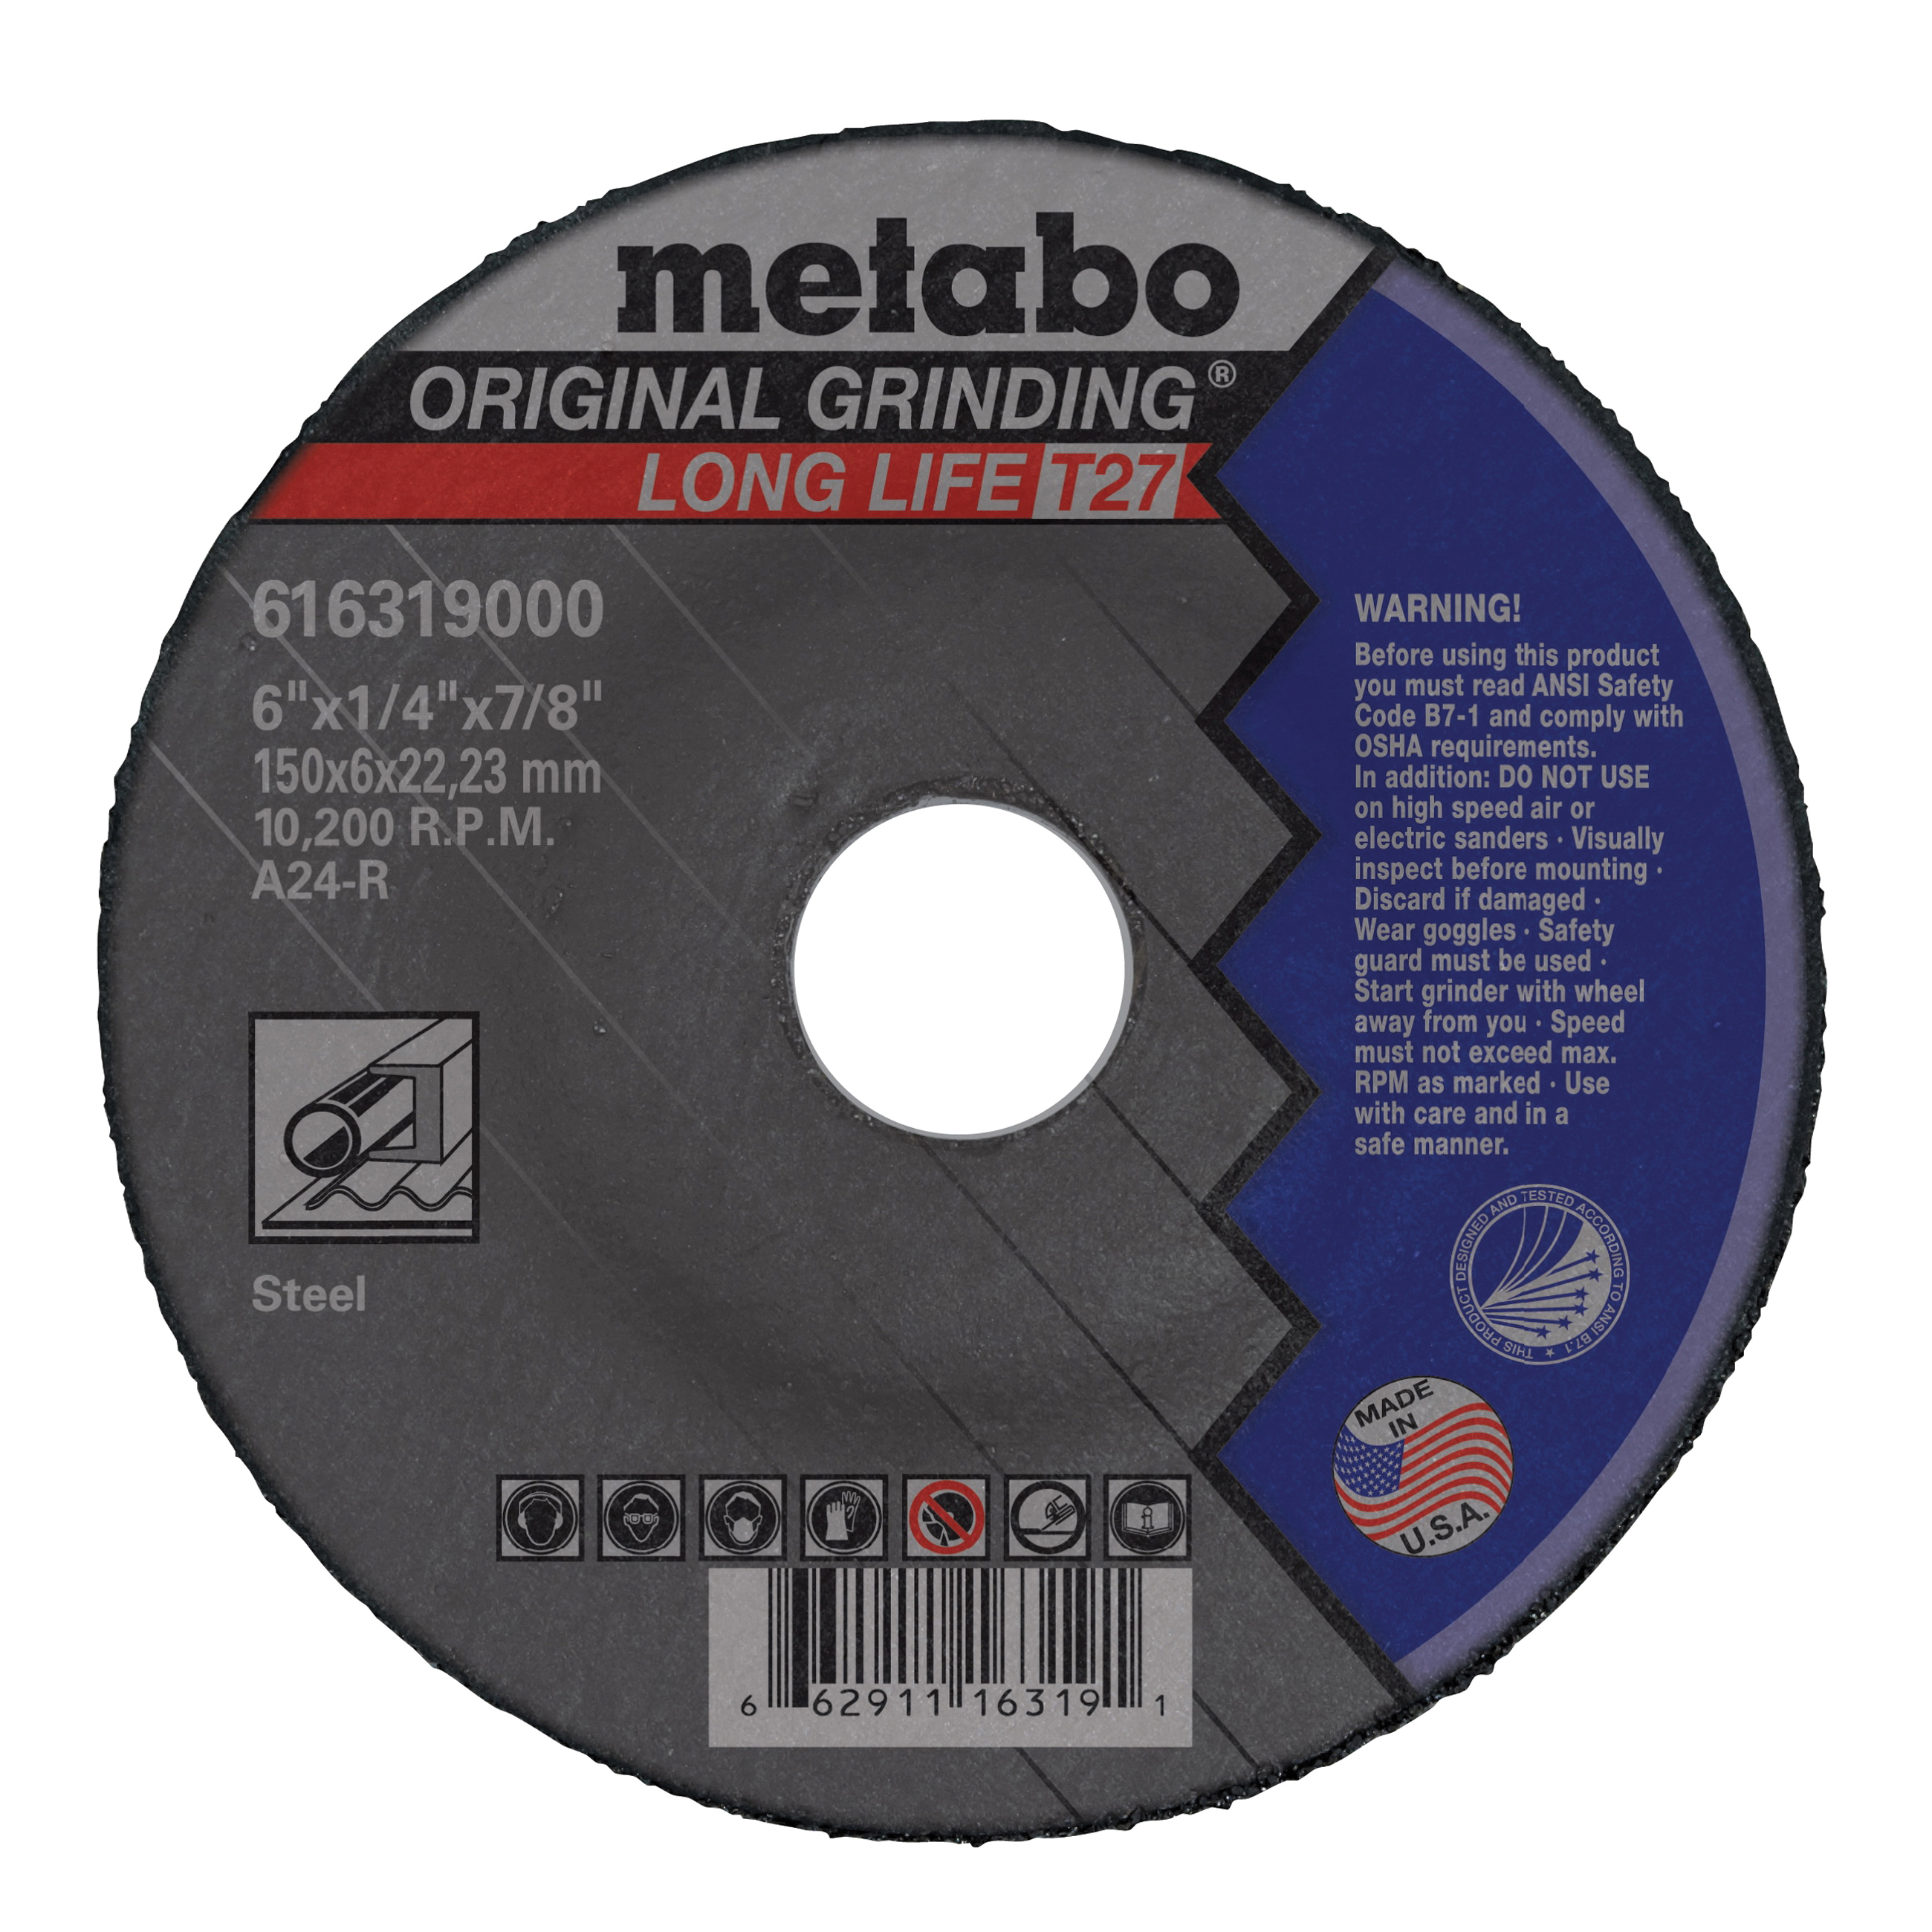 metabo® 616319000 Original Grinding® Long Life General Purpose Depressed Center Wheel, 6 in Dia x 1/4 in THK, 7/8 in Center Hole, A24R Grit, Aluminum Oxide Abrasive